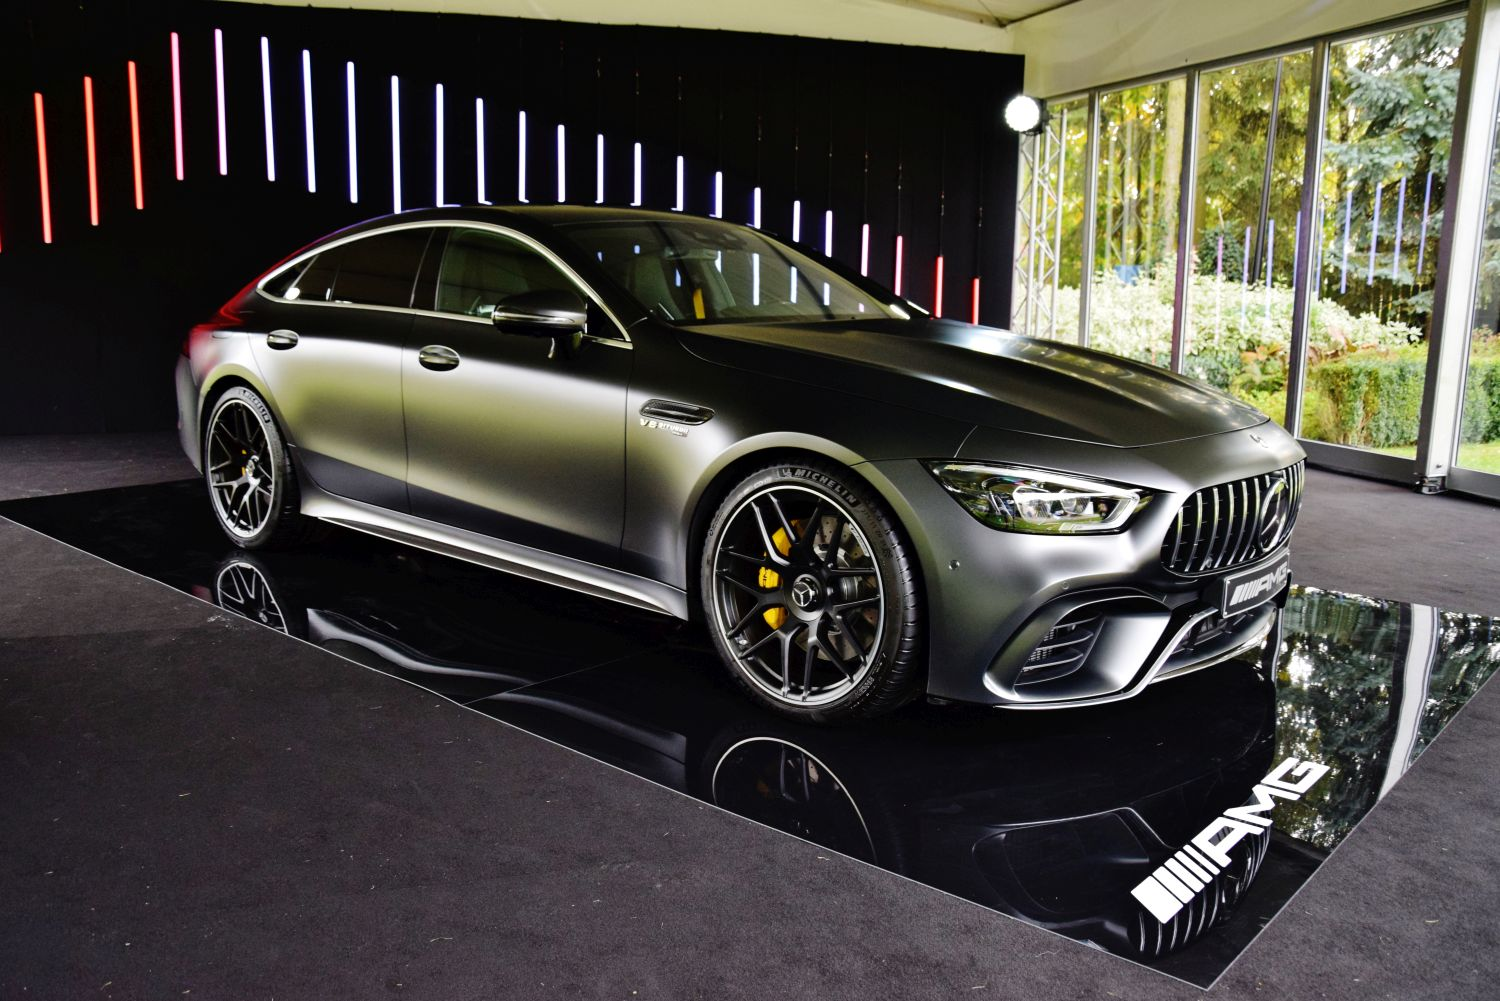 mercedes amg gt 4 door coupe i c 63 s coupe pra premiery w polsce namasce. Black Bedroom Furniture Sets. Home Design Ideas